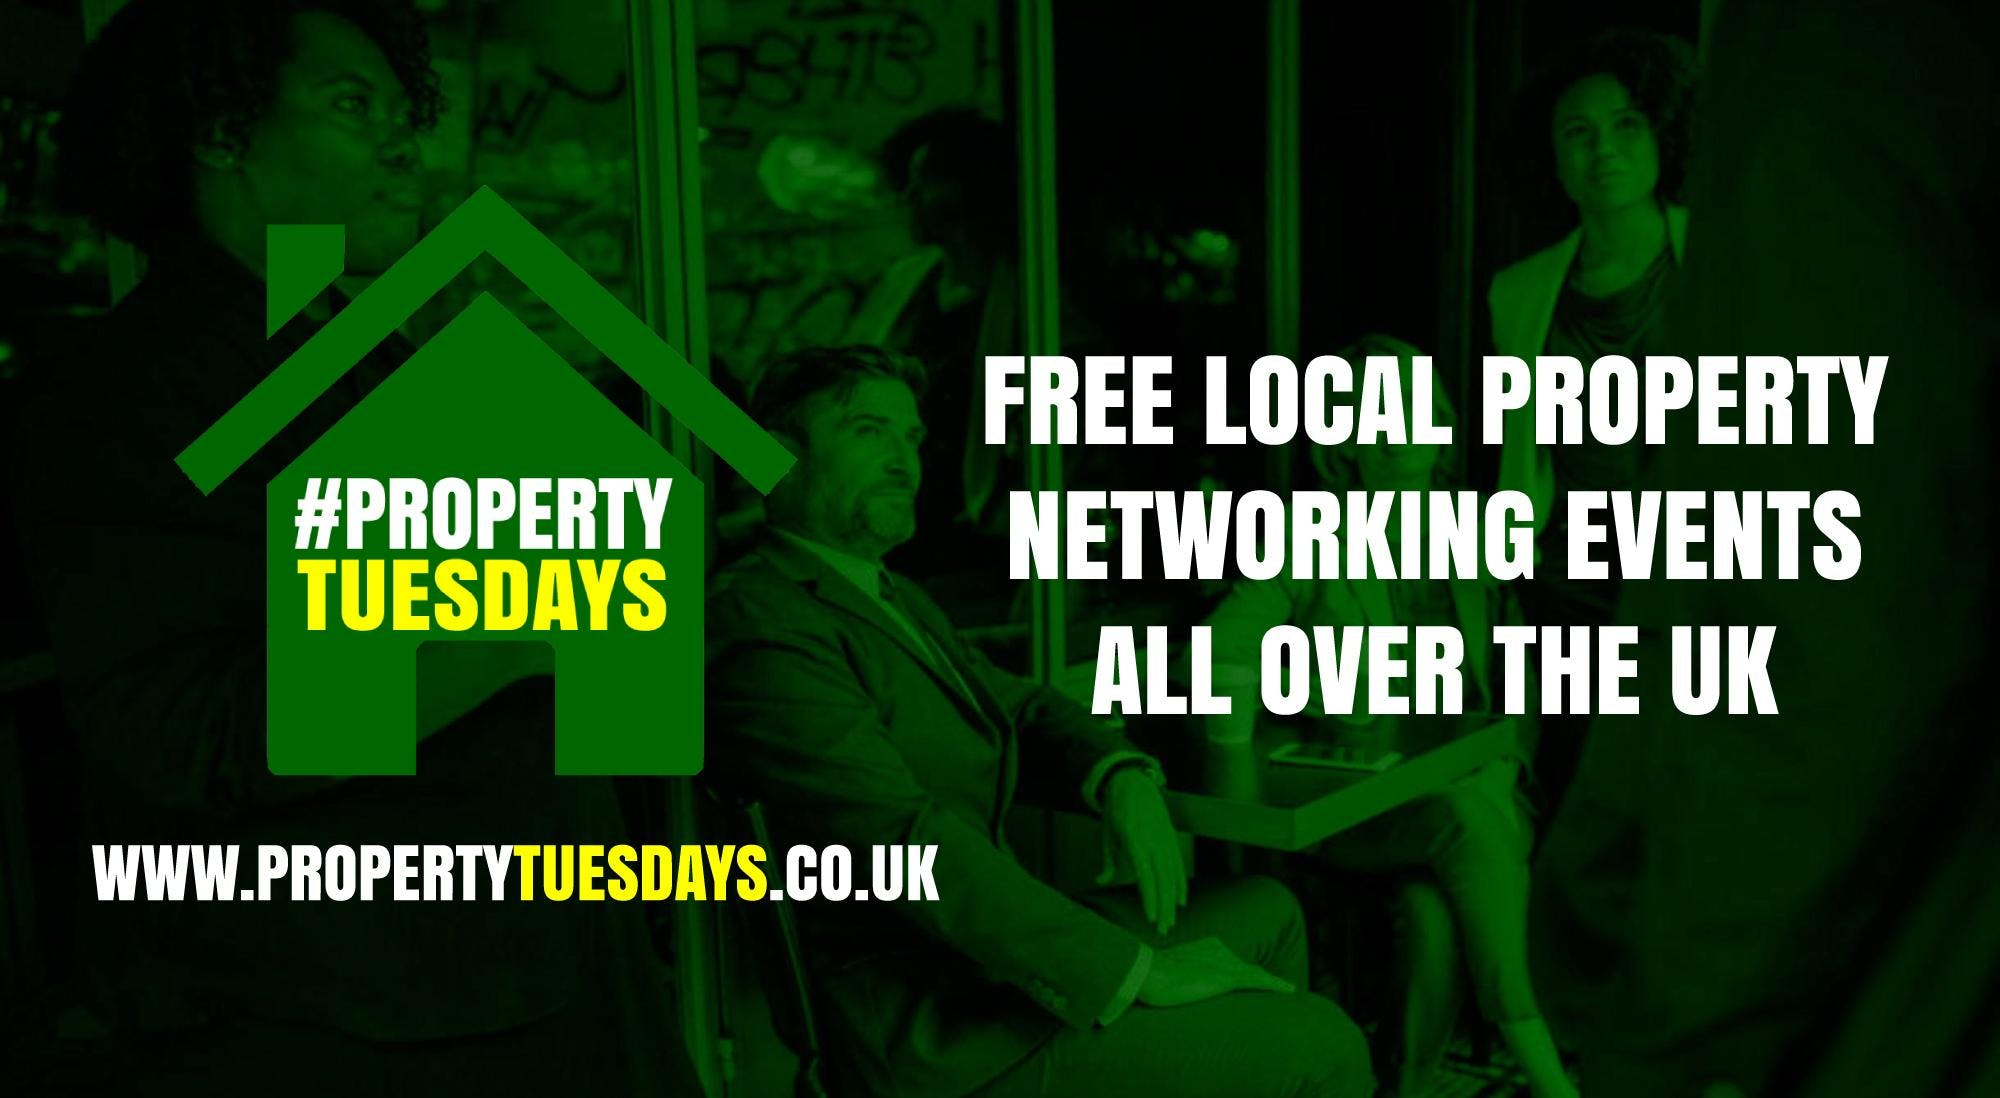 Property Tuesdays! Free property networking event in Cradley Heath